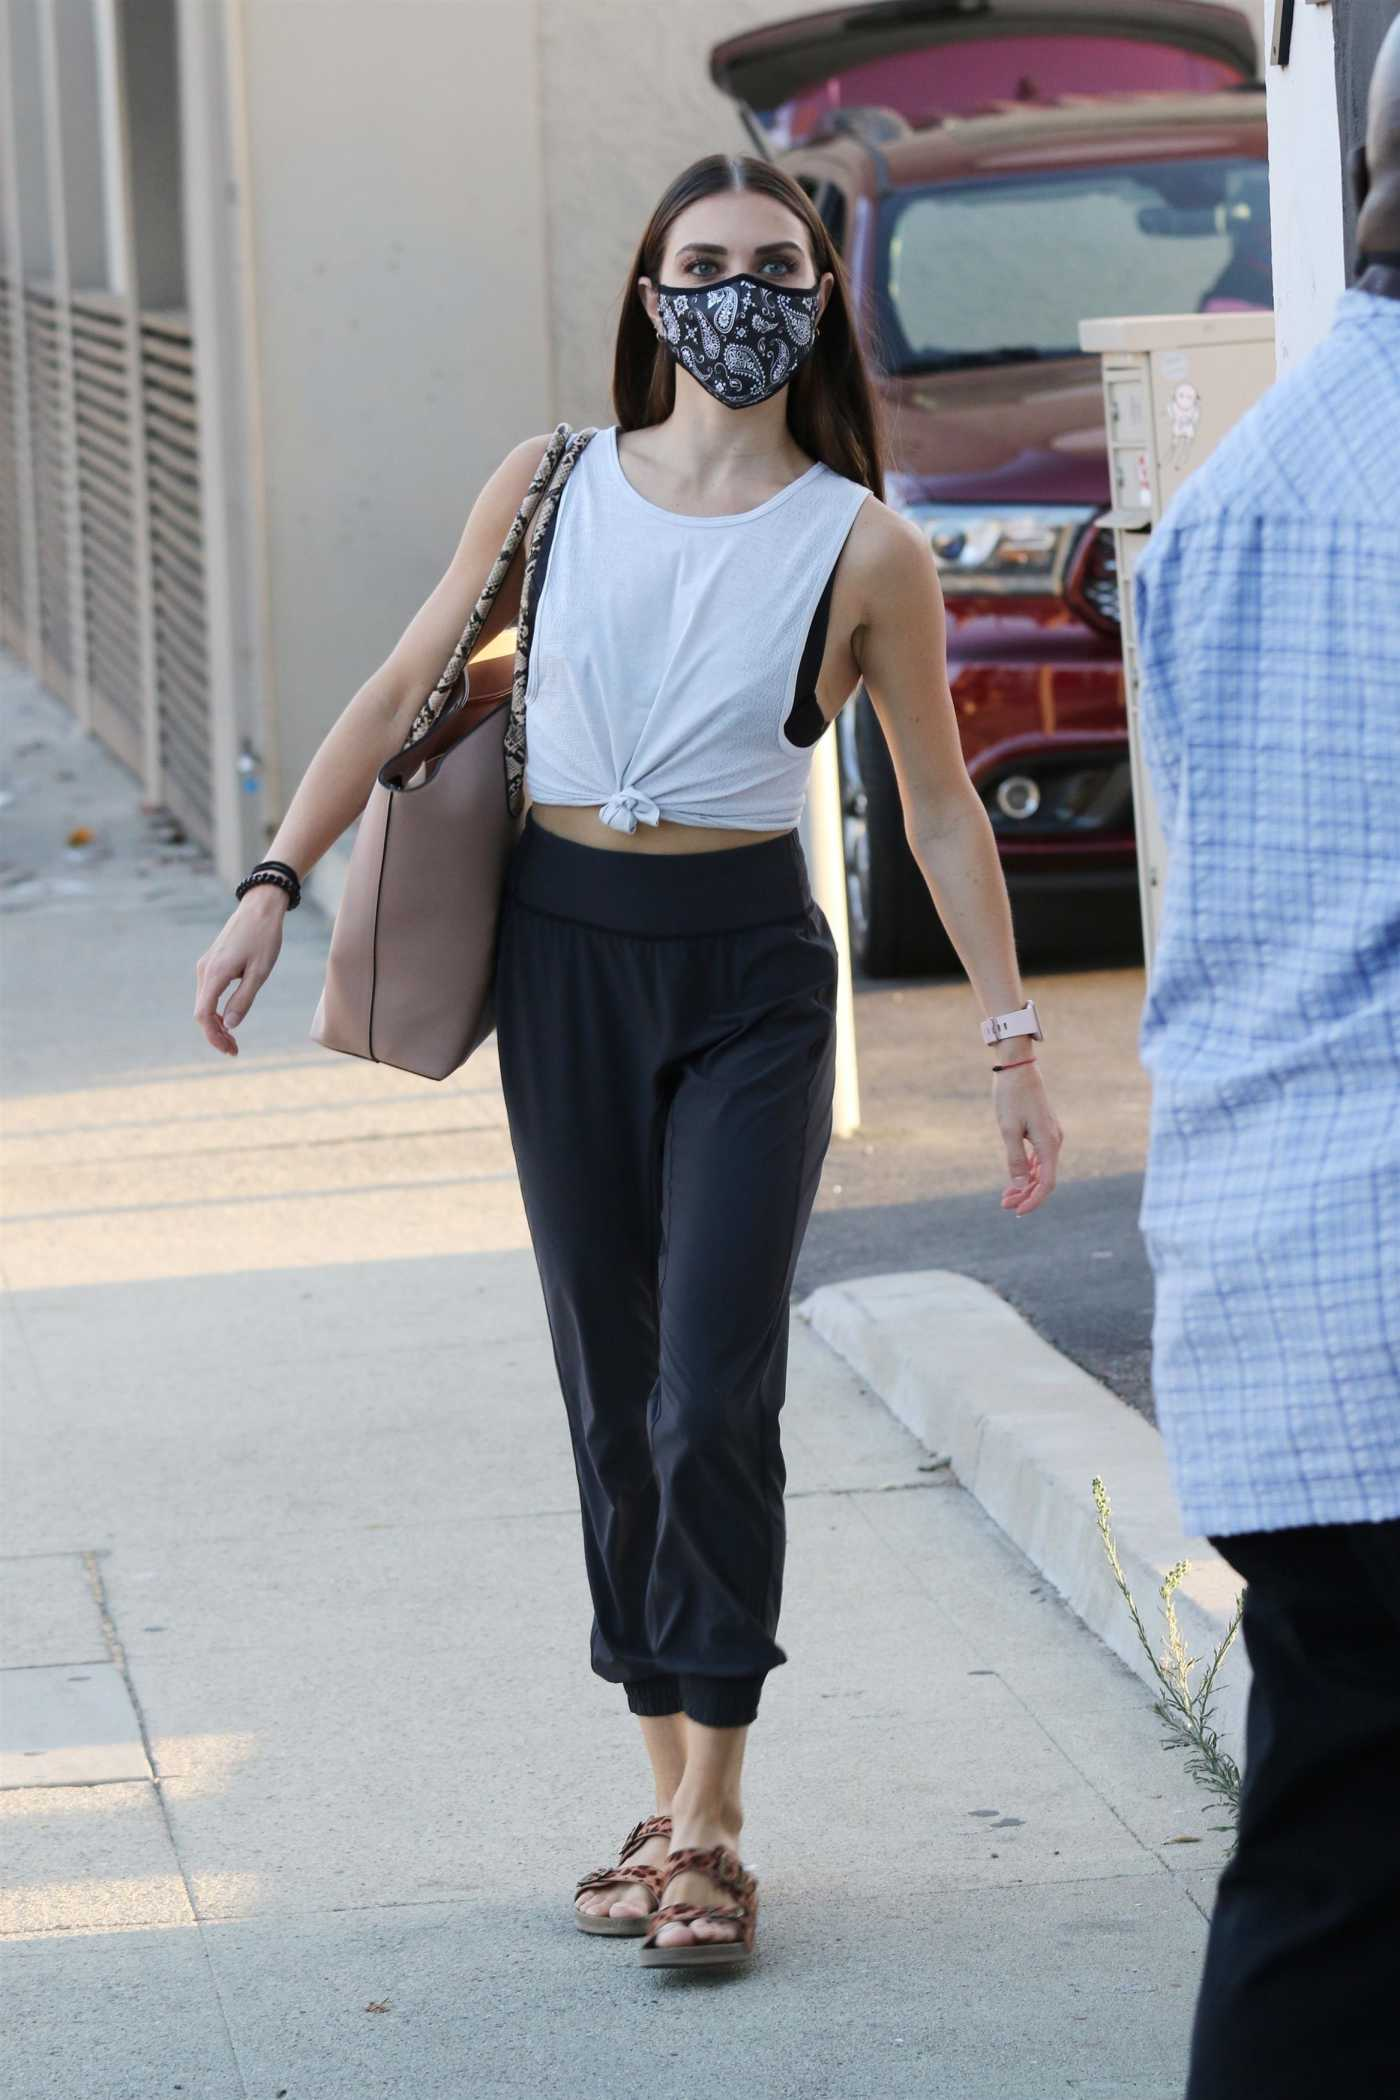 Jenna Johnson in a White Tank Top Arrives at the DWTS Studio in Los Angeles 09/20/2020